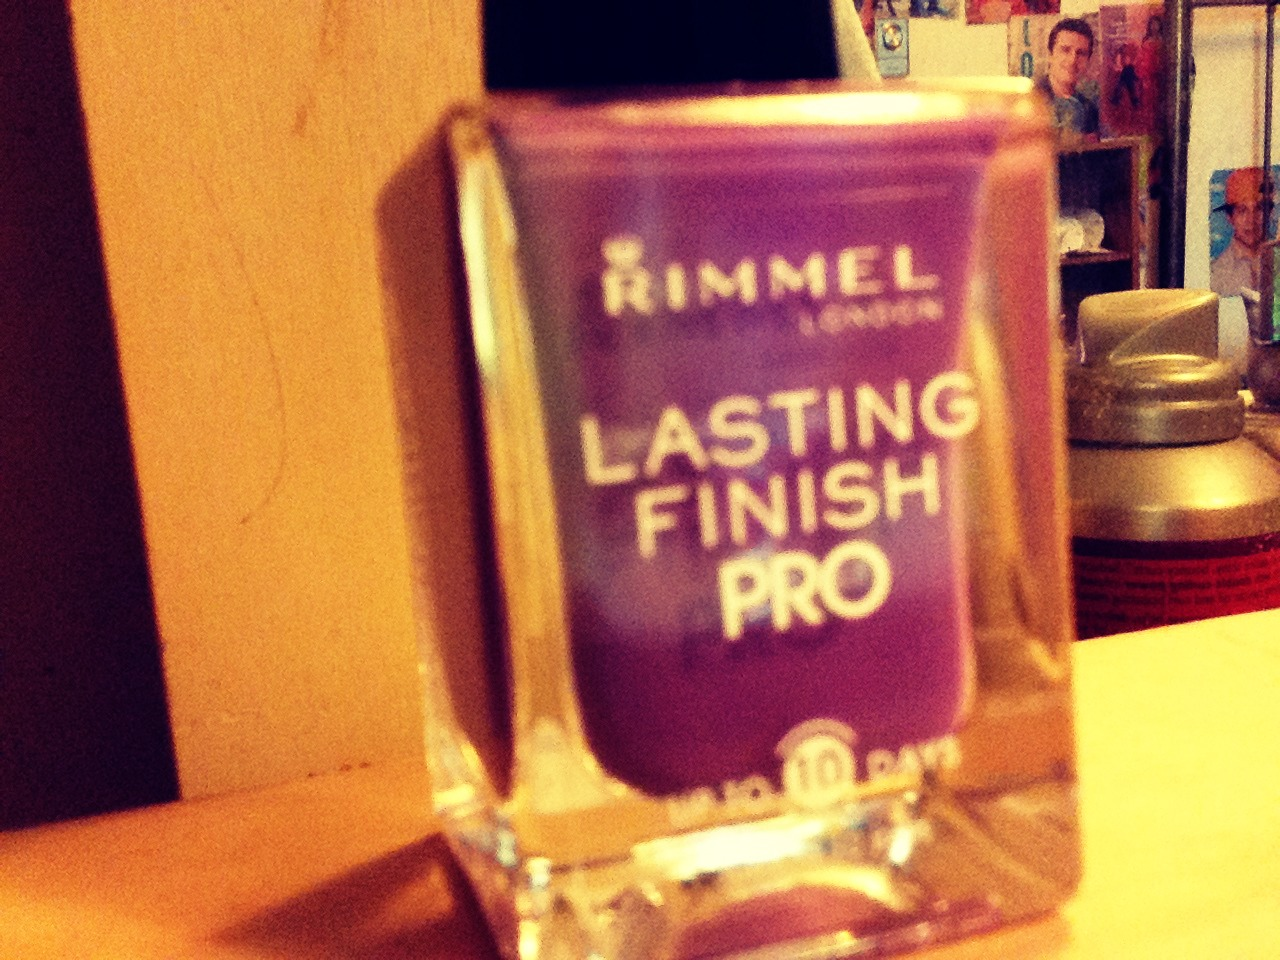 Rimmel Lasting Finish Pro is amazing, if you don't have this nail polish go get one<3